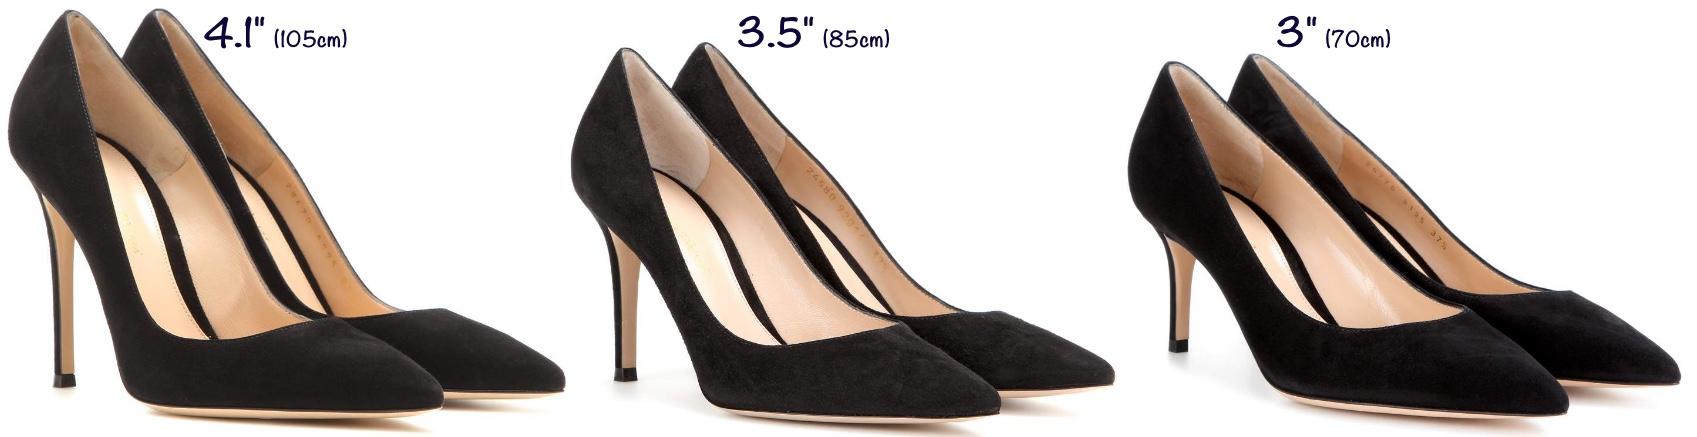 Woman Shoes Size  In Cm